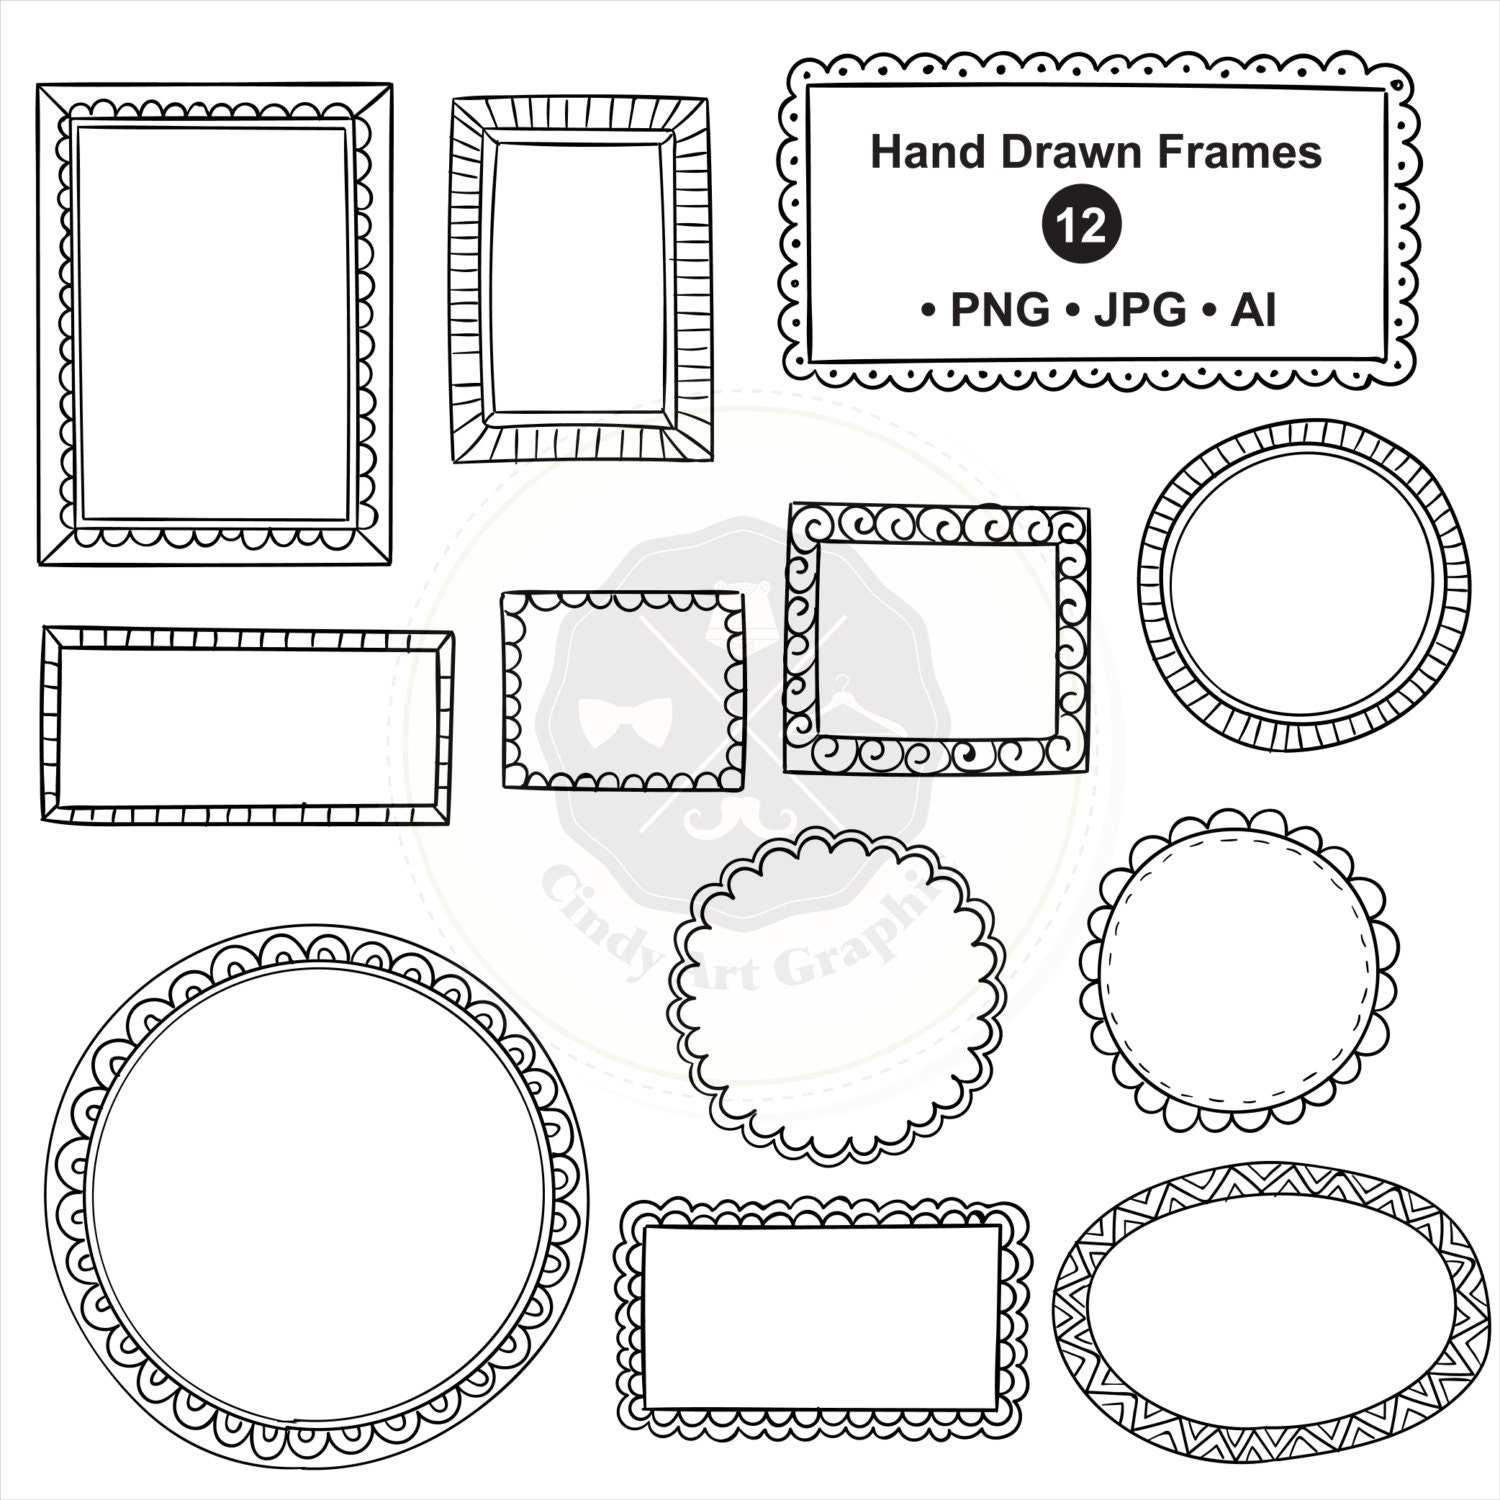 Hand Drawn Frames Clipart,frame clipart,doodle borders ...